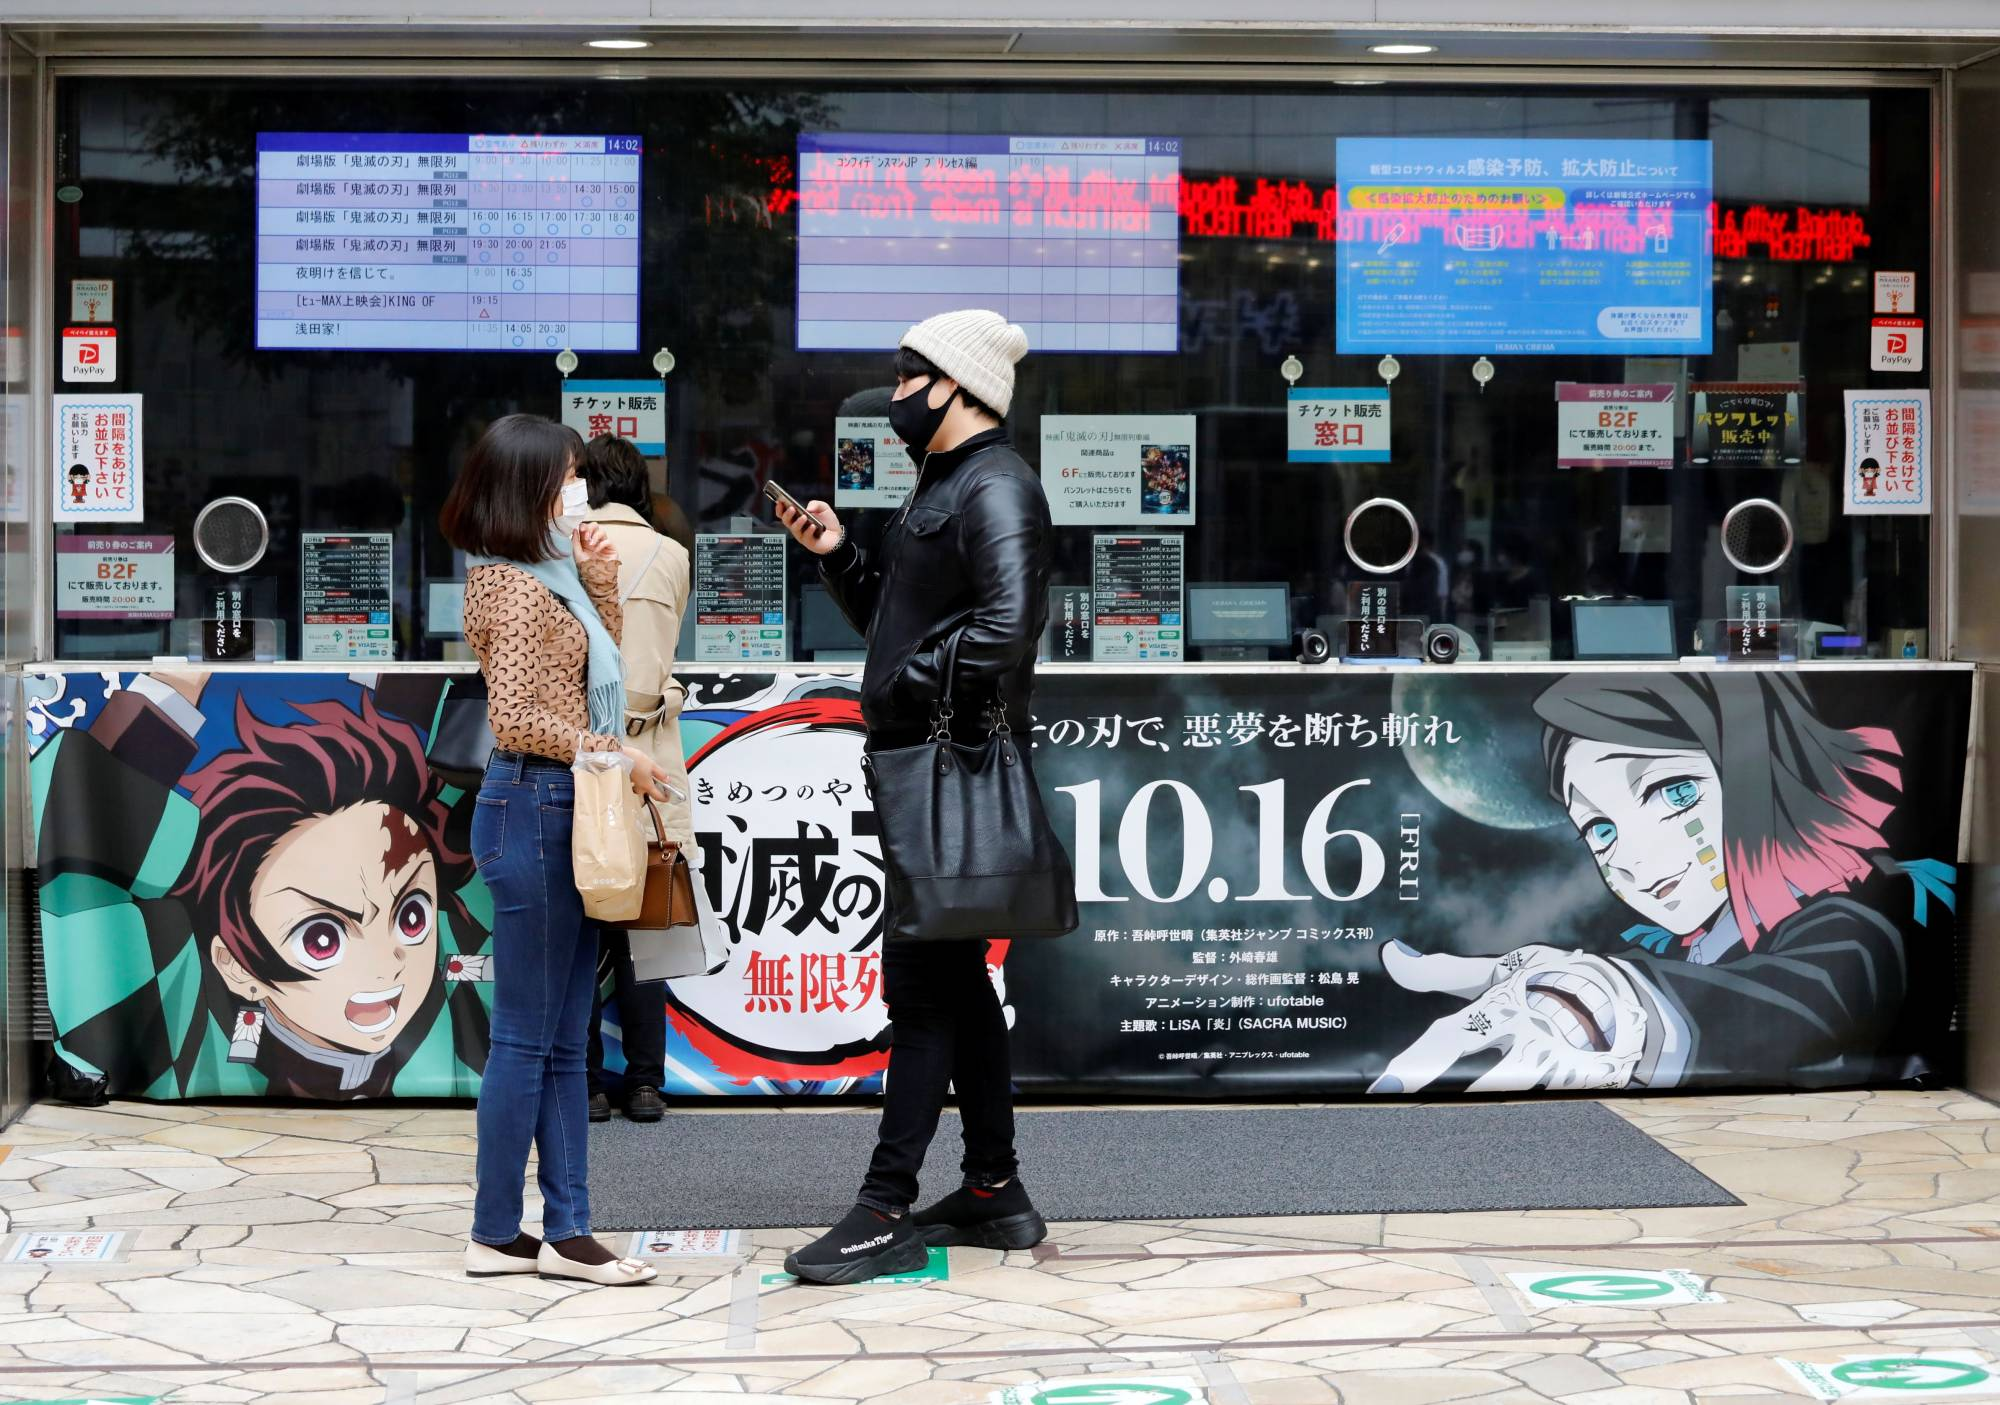 """Demon Slayer: Kimetsu no Yaiba the Movie: Mugen Train"" dethroned Oscar-winning Studio Ghibli masterpiece ""Spirited Away"" to rake in box office revenues of nearly ¥40 billion, easily the highest ever in Japan's cinematic history. 